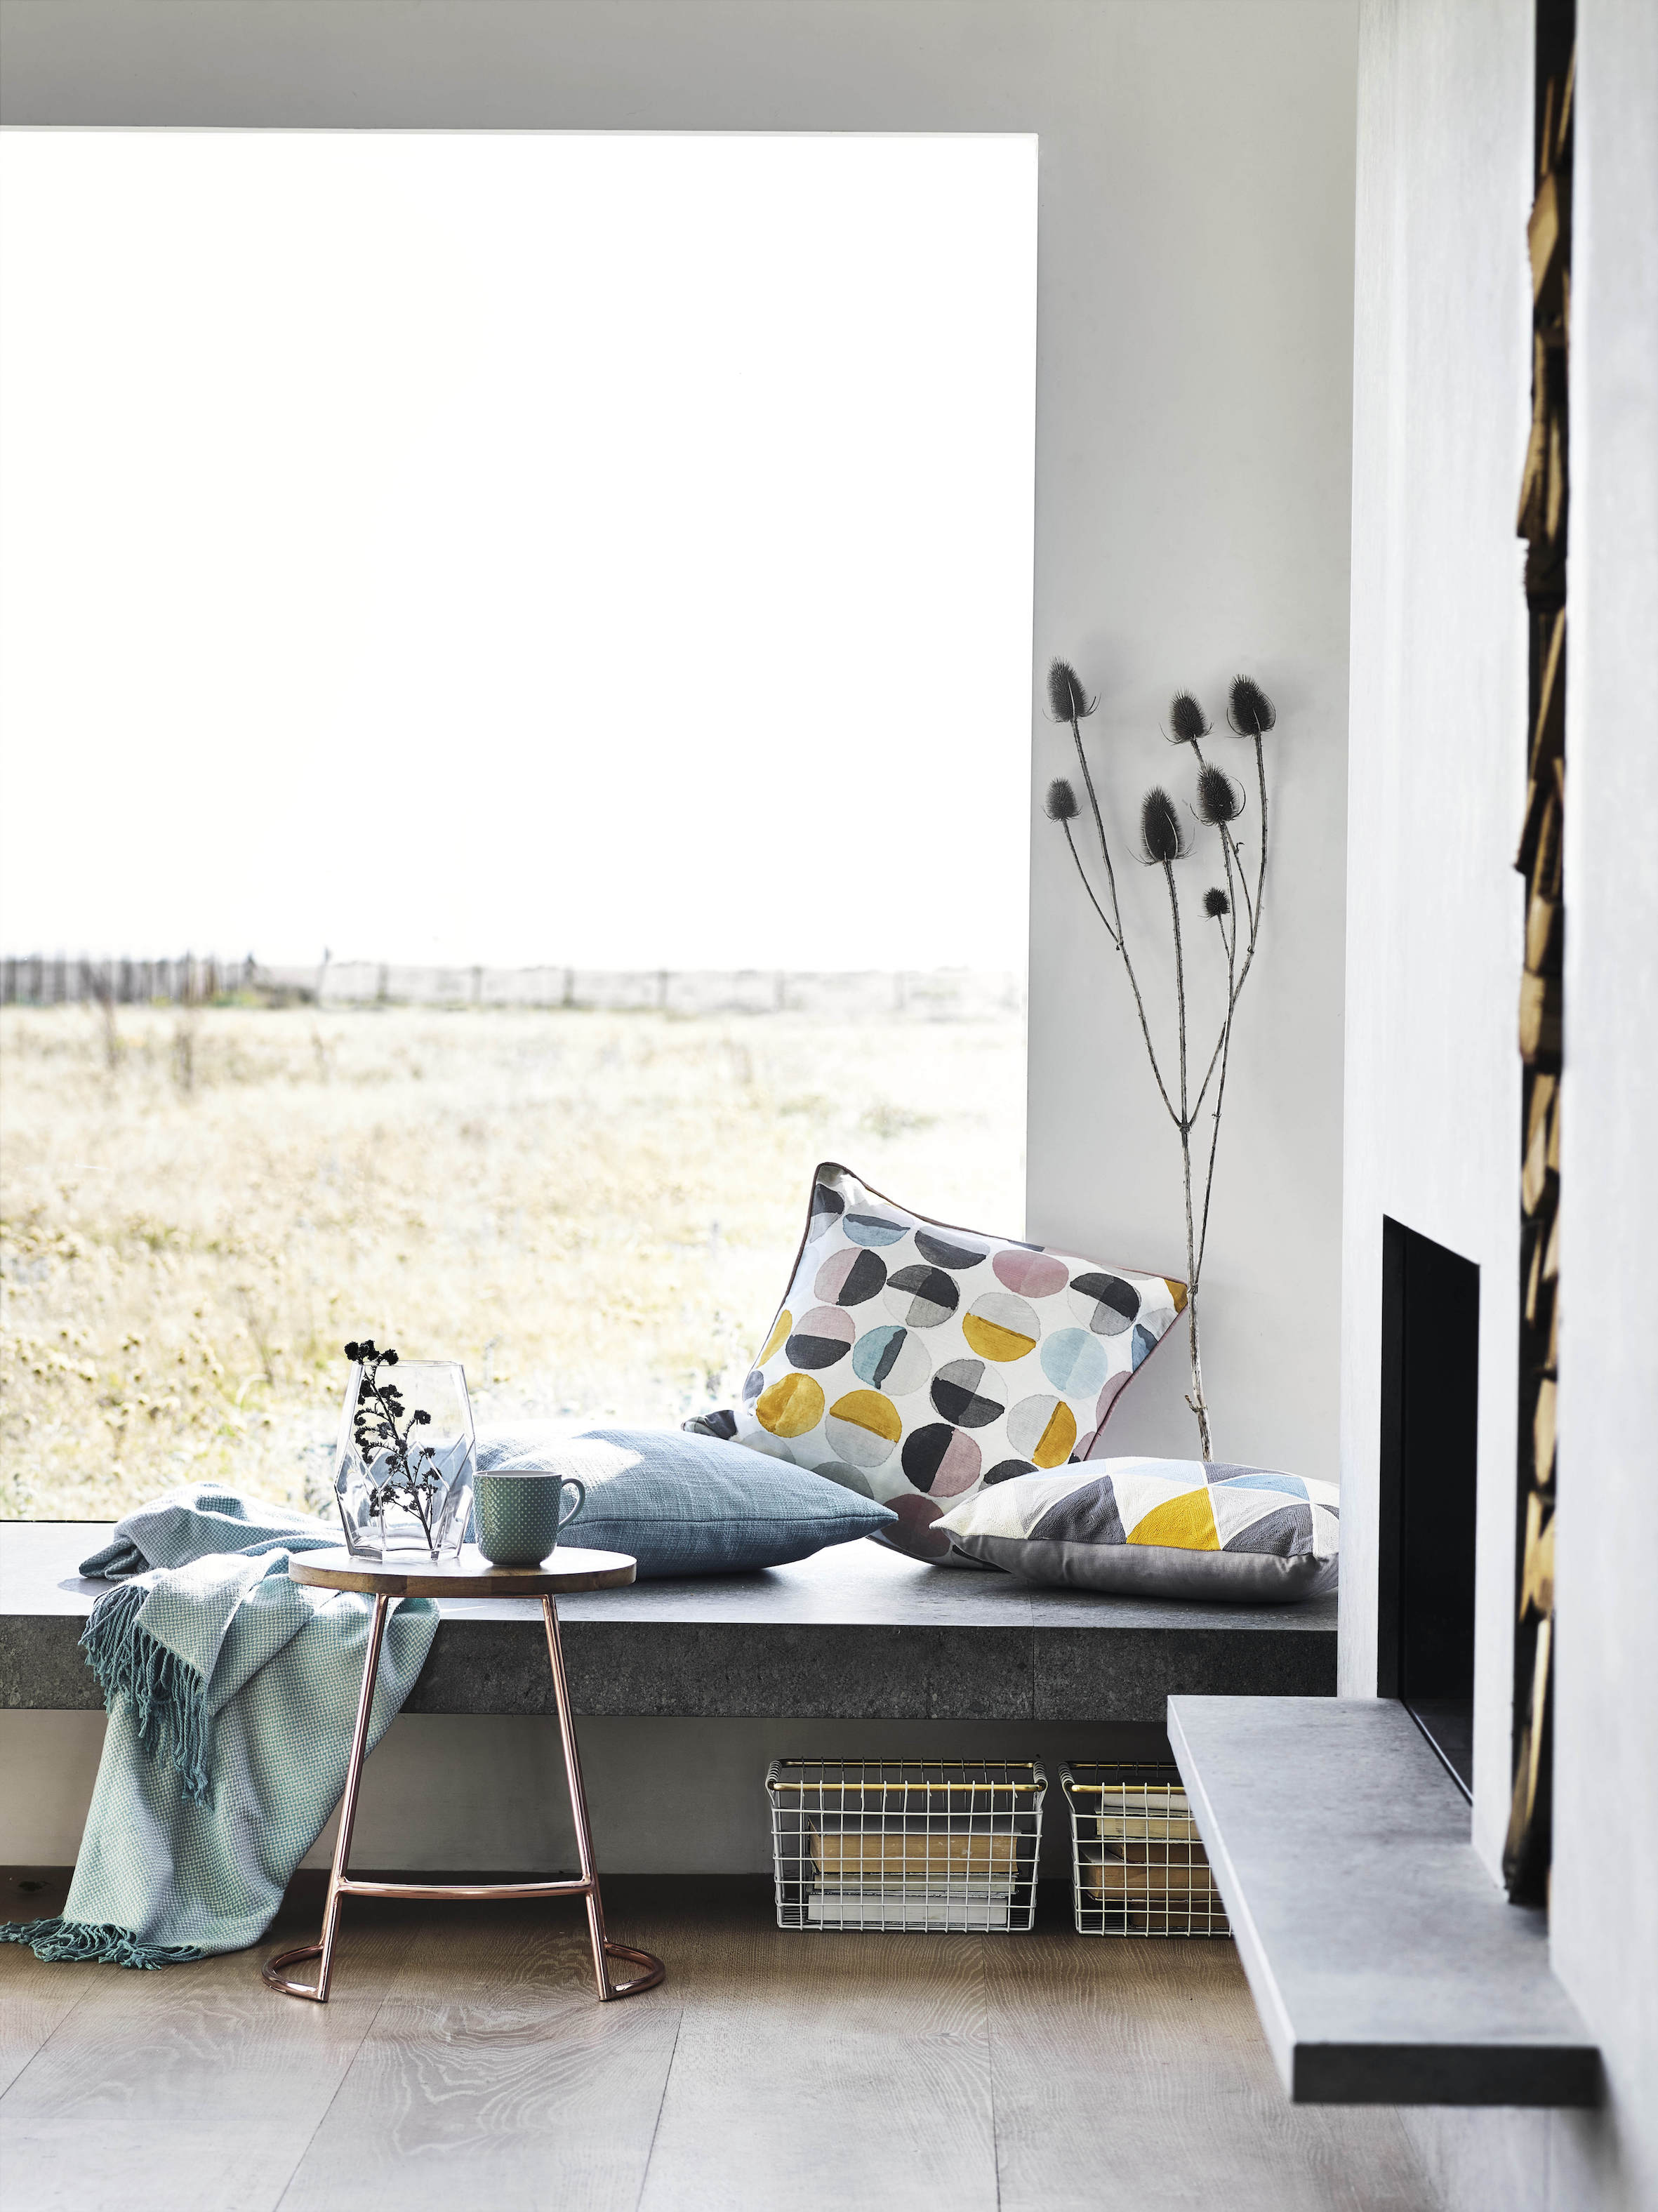 The focus of this room is all about connecting with nature through the large picture window rather than ornamentation | Courtesy of Sainsbury's